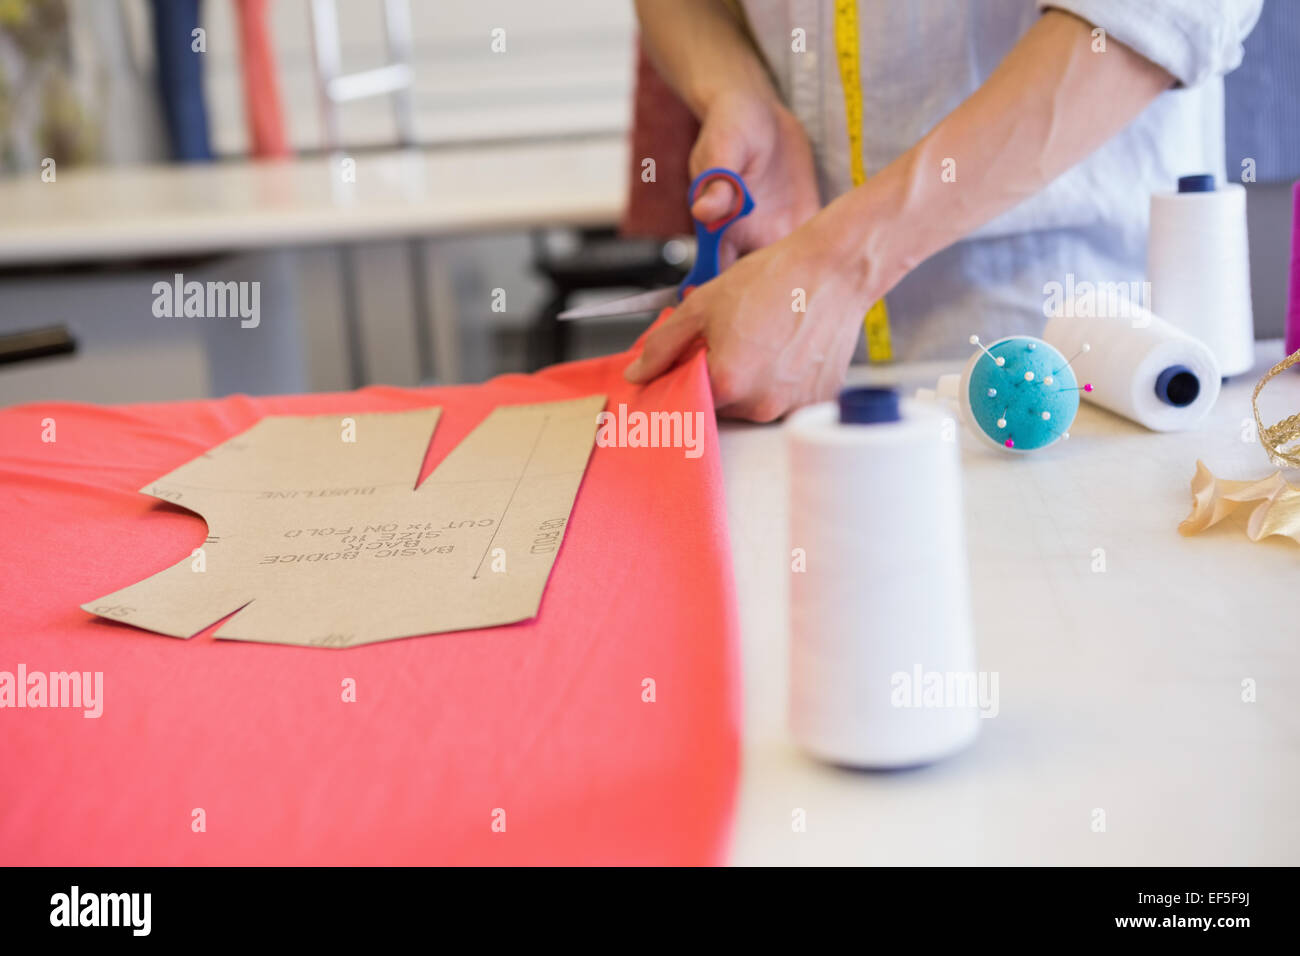 Student cutting fabric with pair of scissors - Stock Image